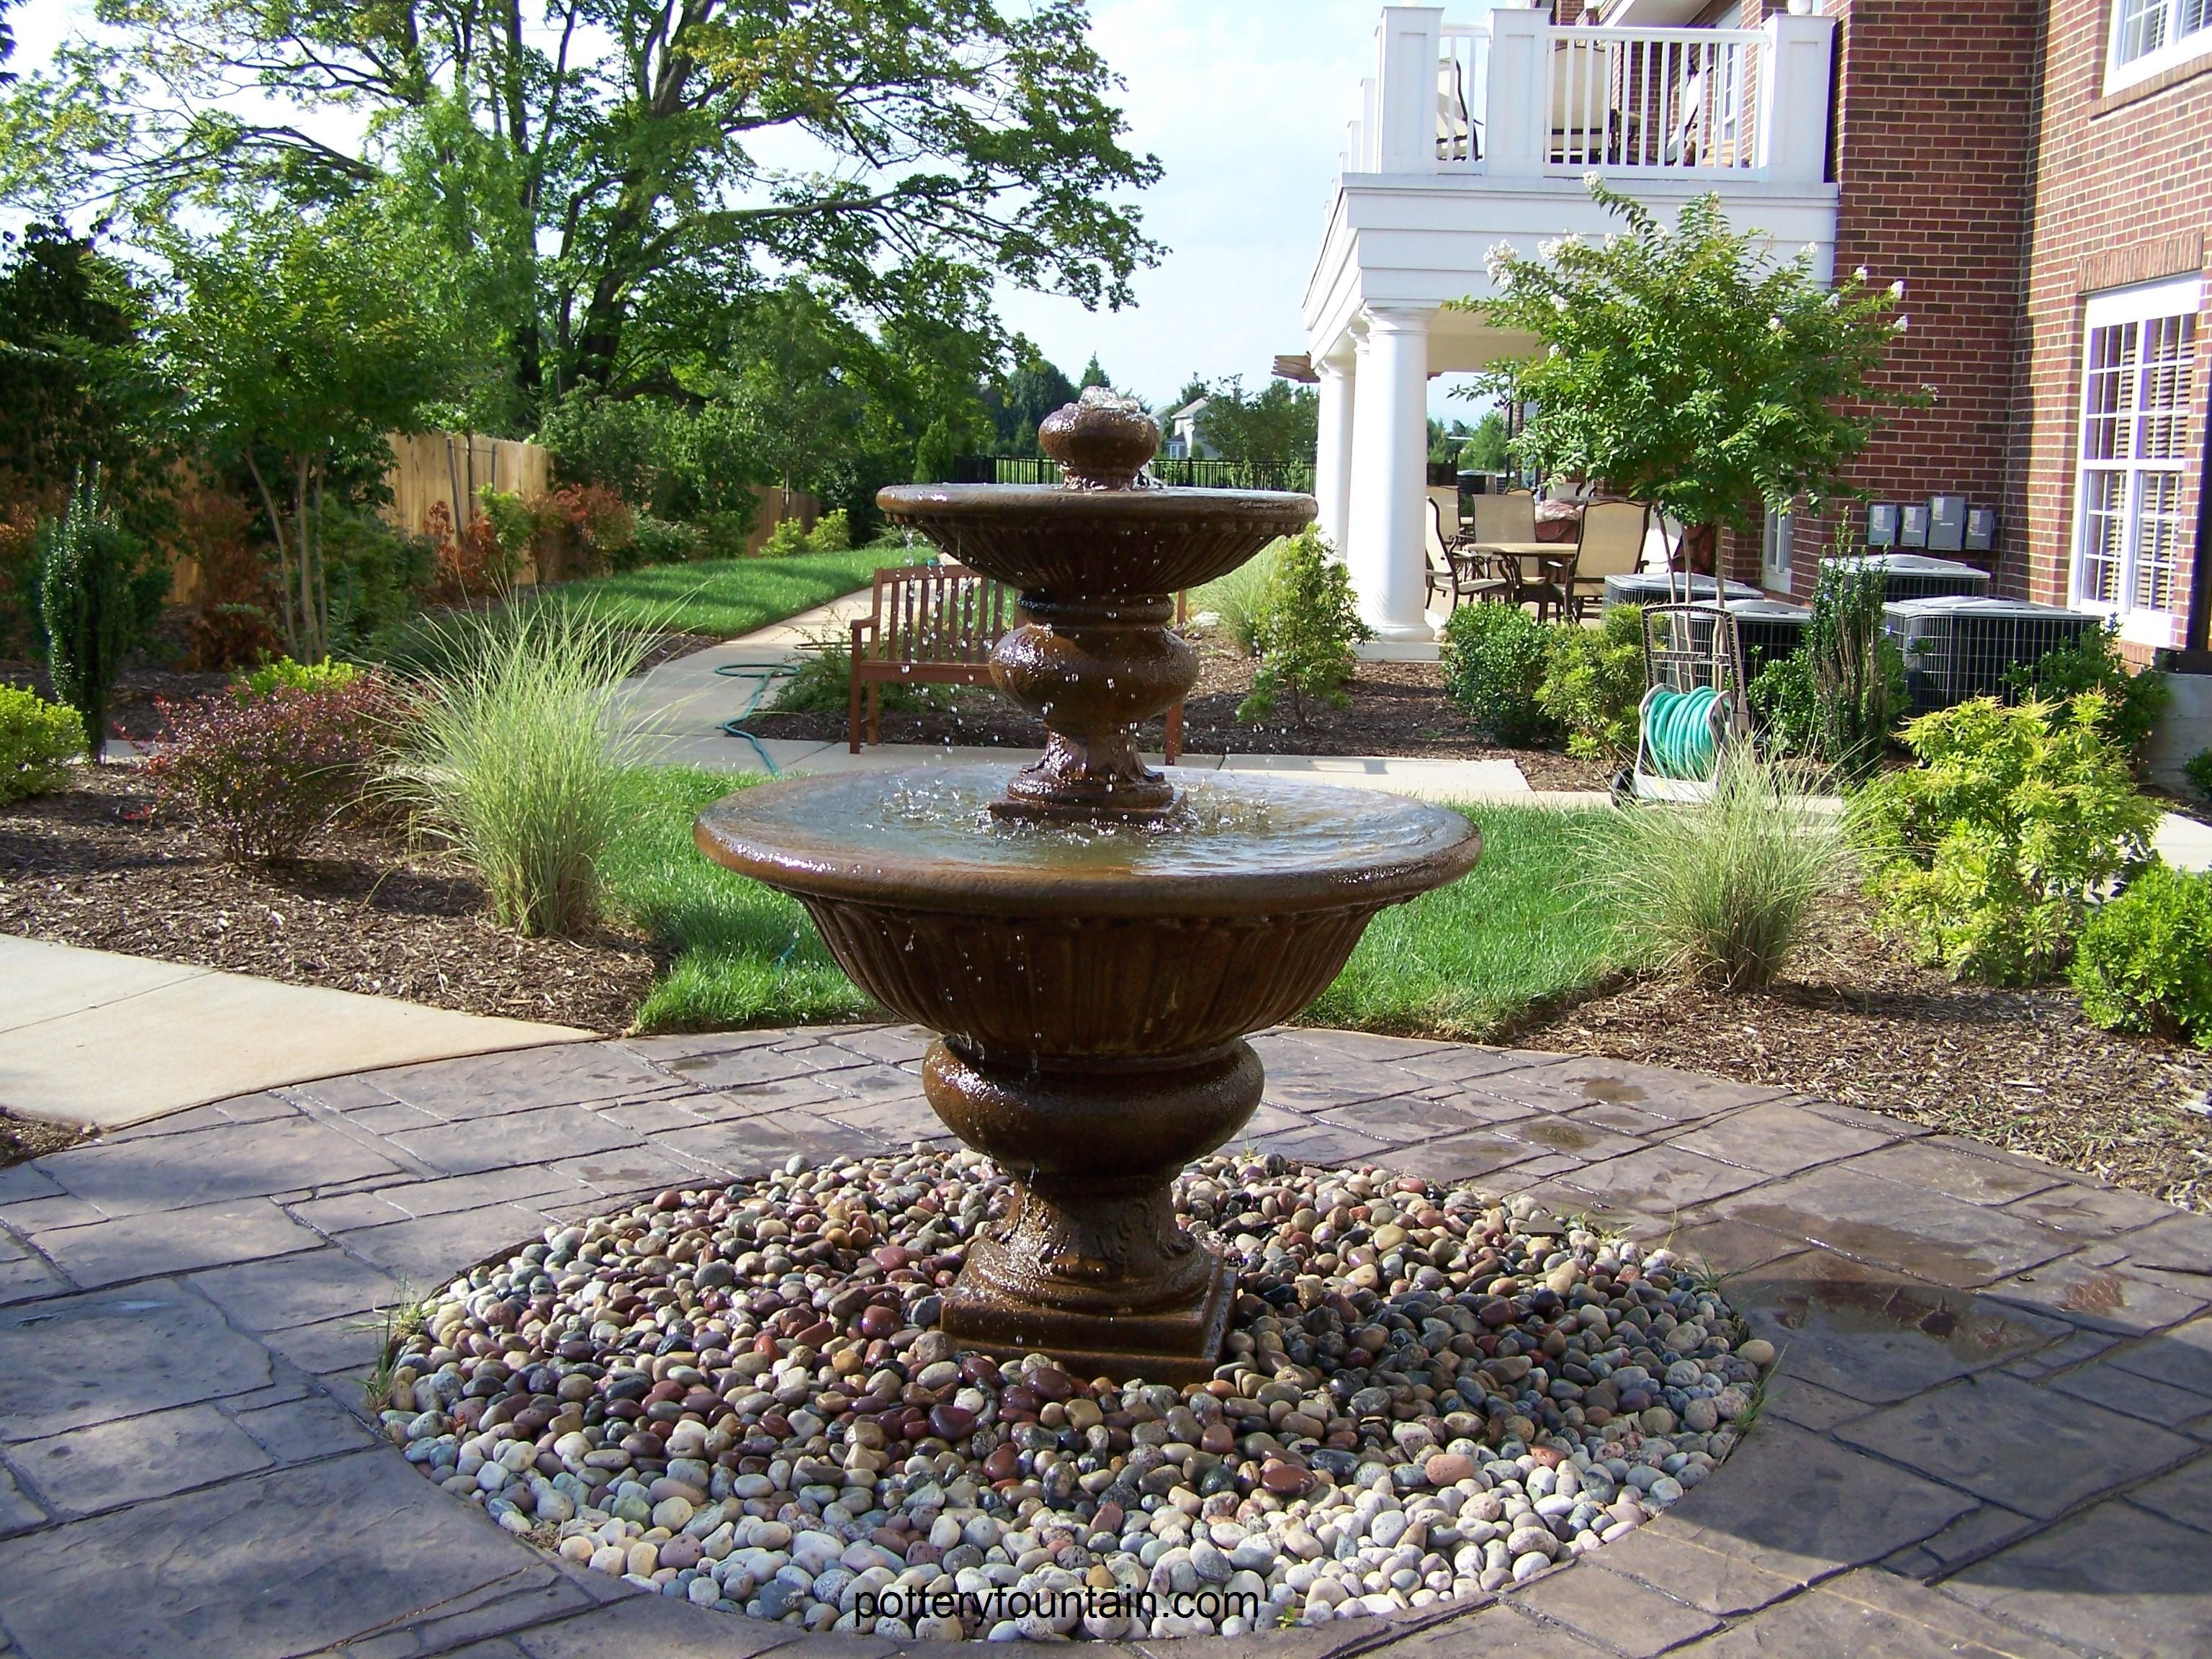 Classic Tiered Fountain On One Of Our Disappearing Fountain Basins Garden Fountains Garden Design Beautiful Outdoor Spaces